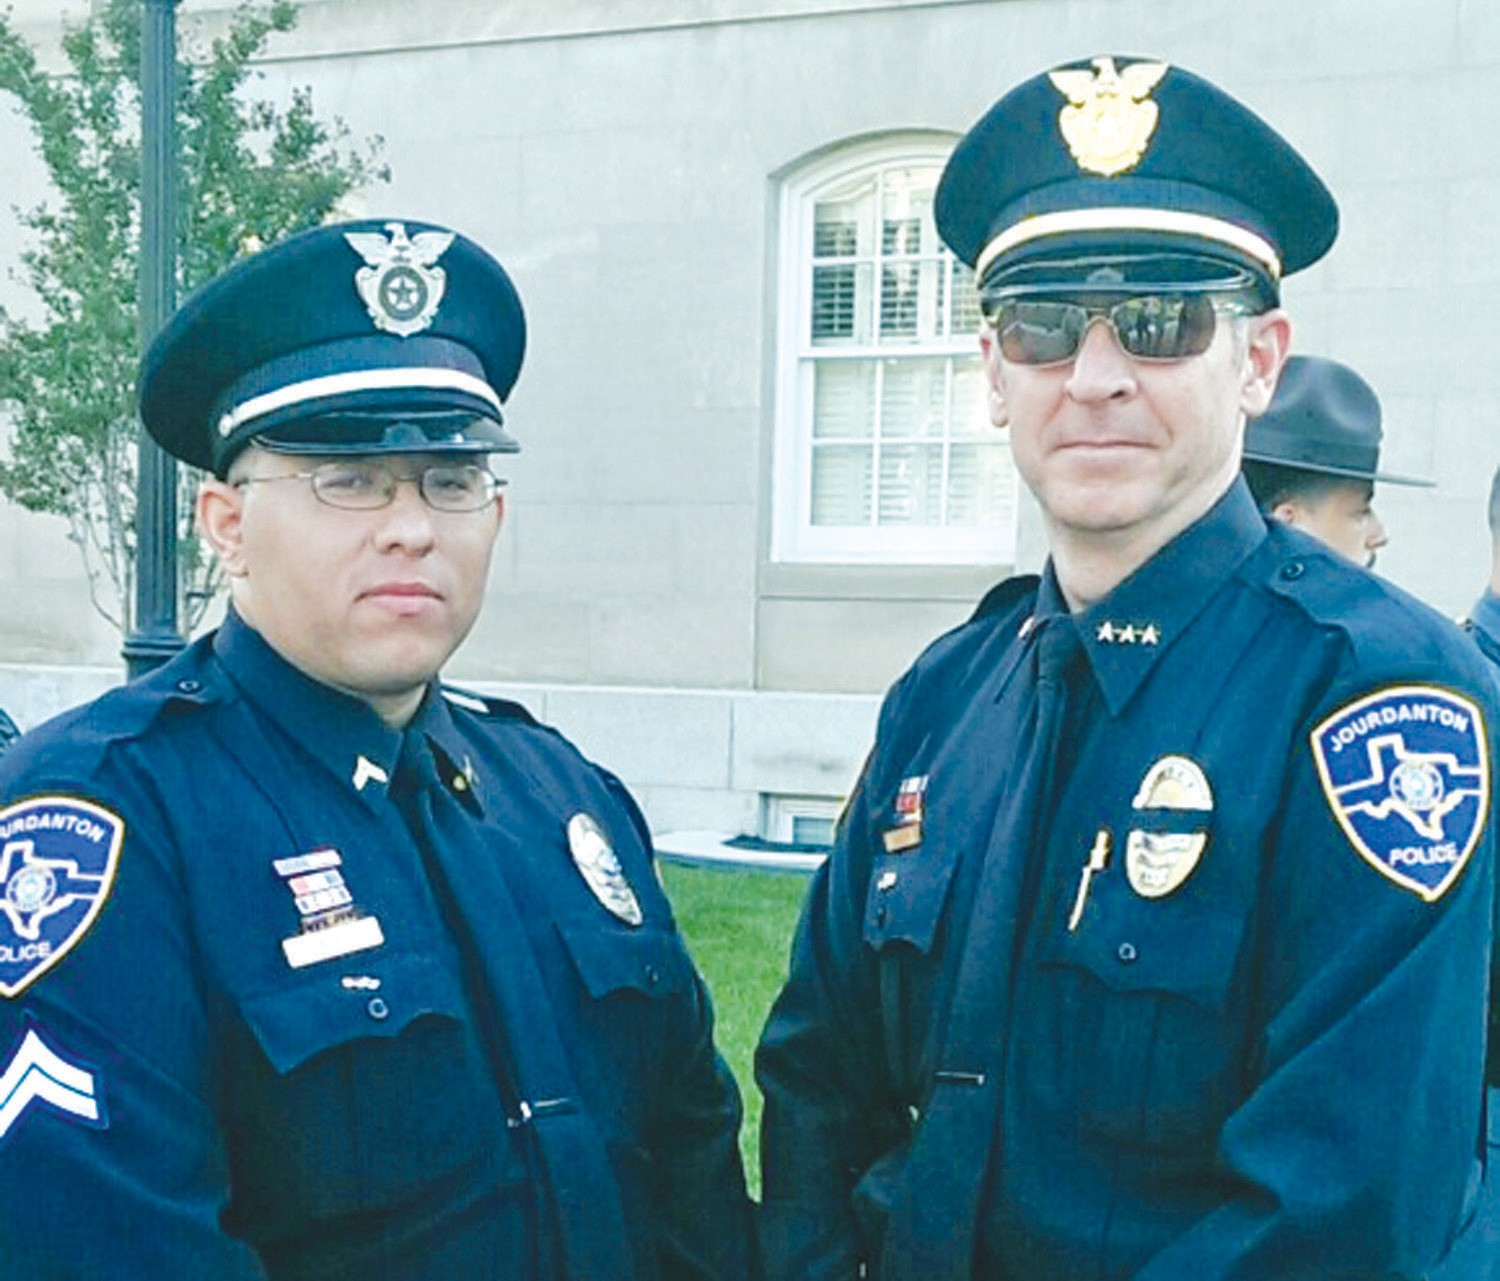 Jourdanton Police Chief Eric Kaiser and Corporal Santos Gonzales were in the nation's capital to attend the United by Light event during National Police Week.